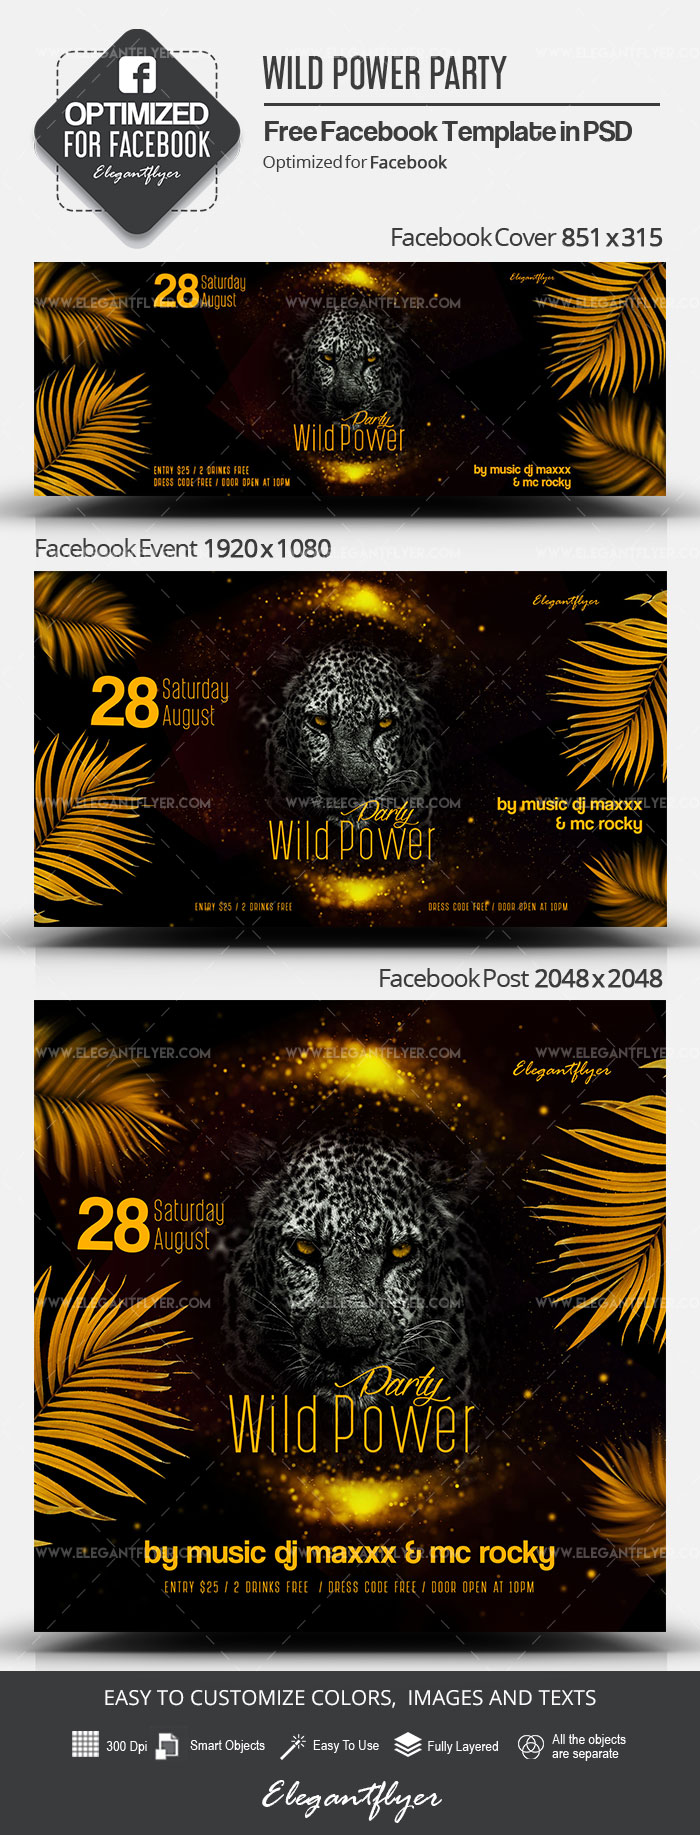 Wild Power Party – Free Facebook Cover Template in PSD + Post + Event cover